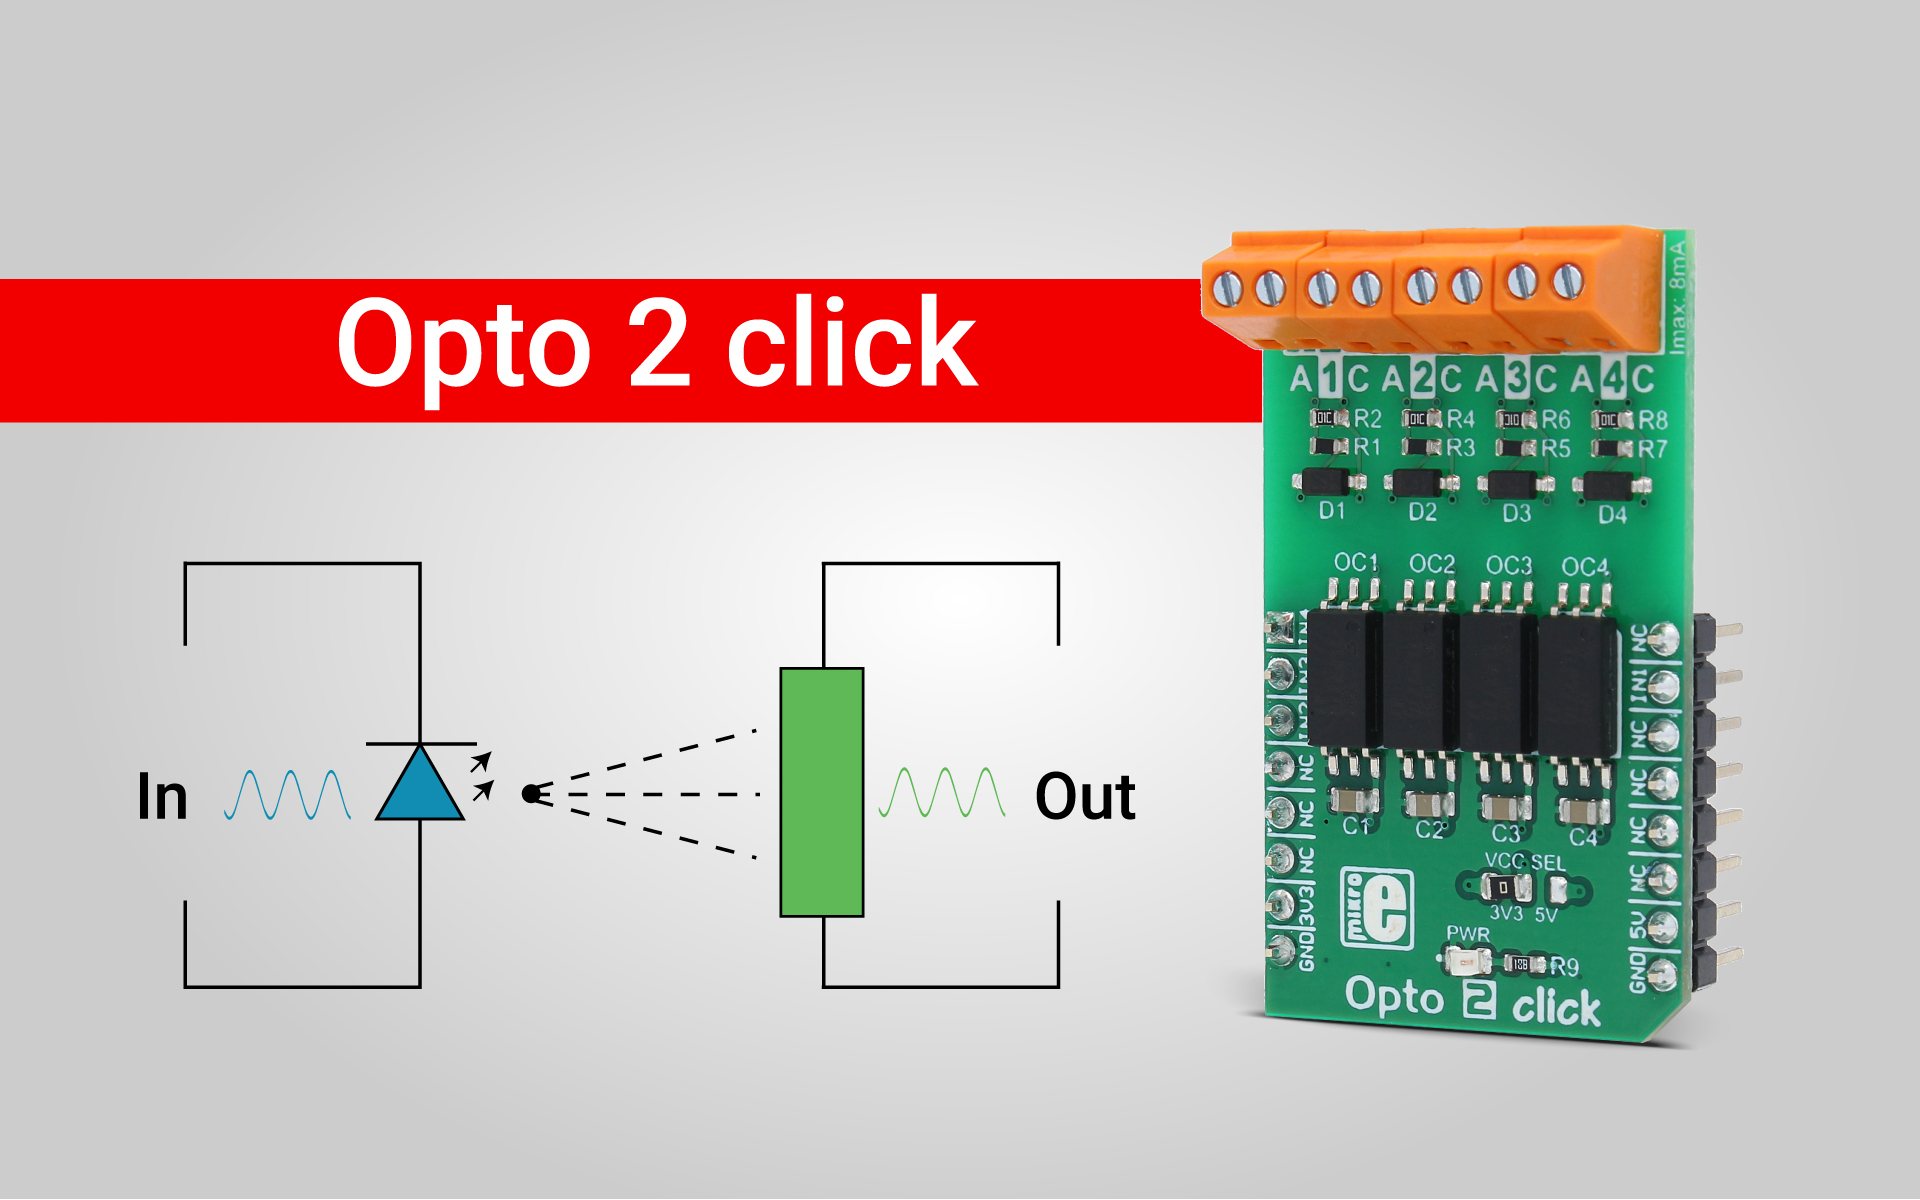 Opto 2 click - optical galvanic isolation on a Click board™